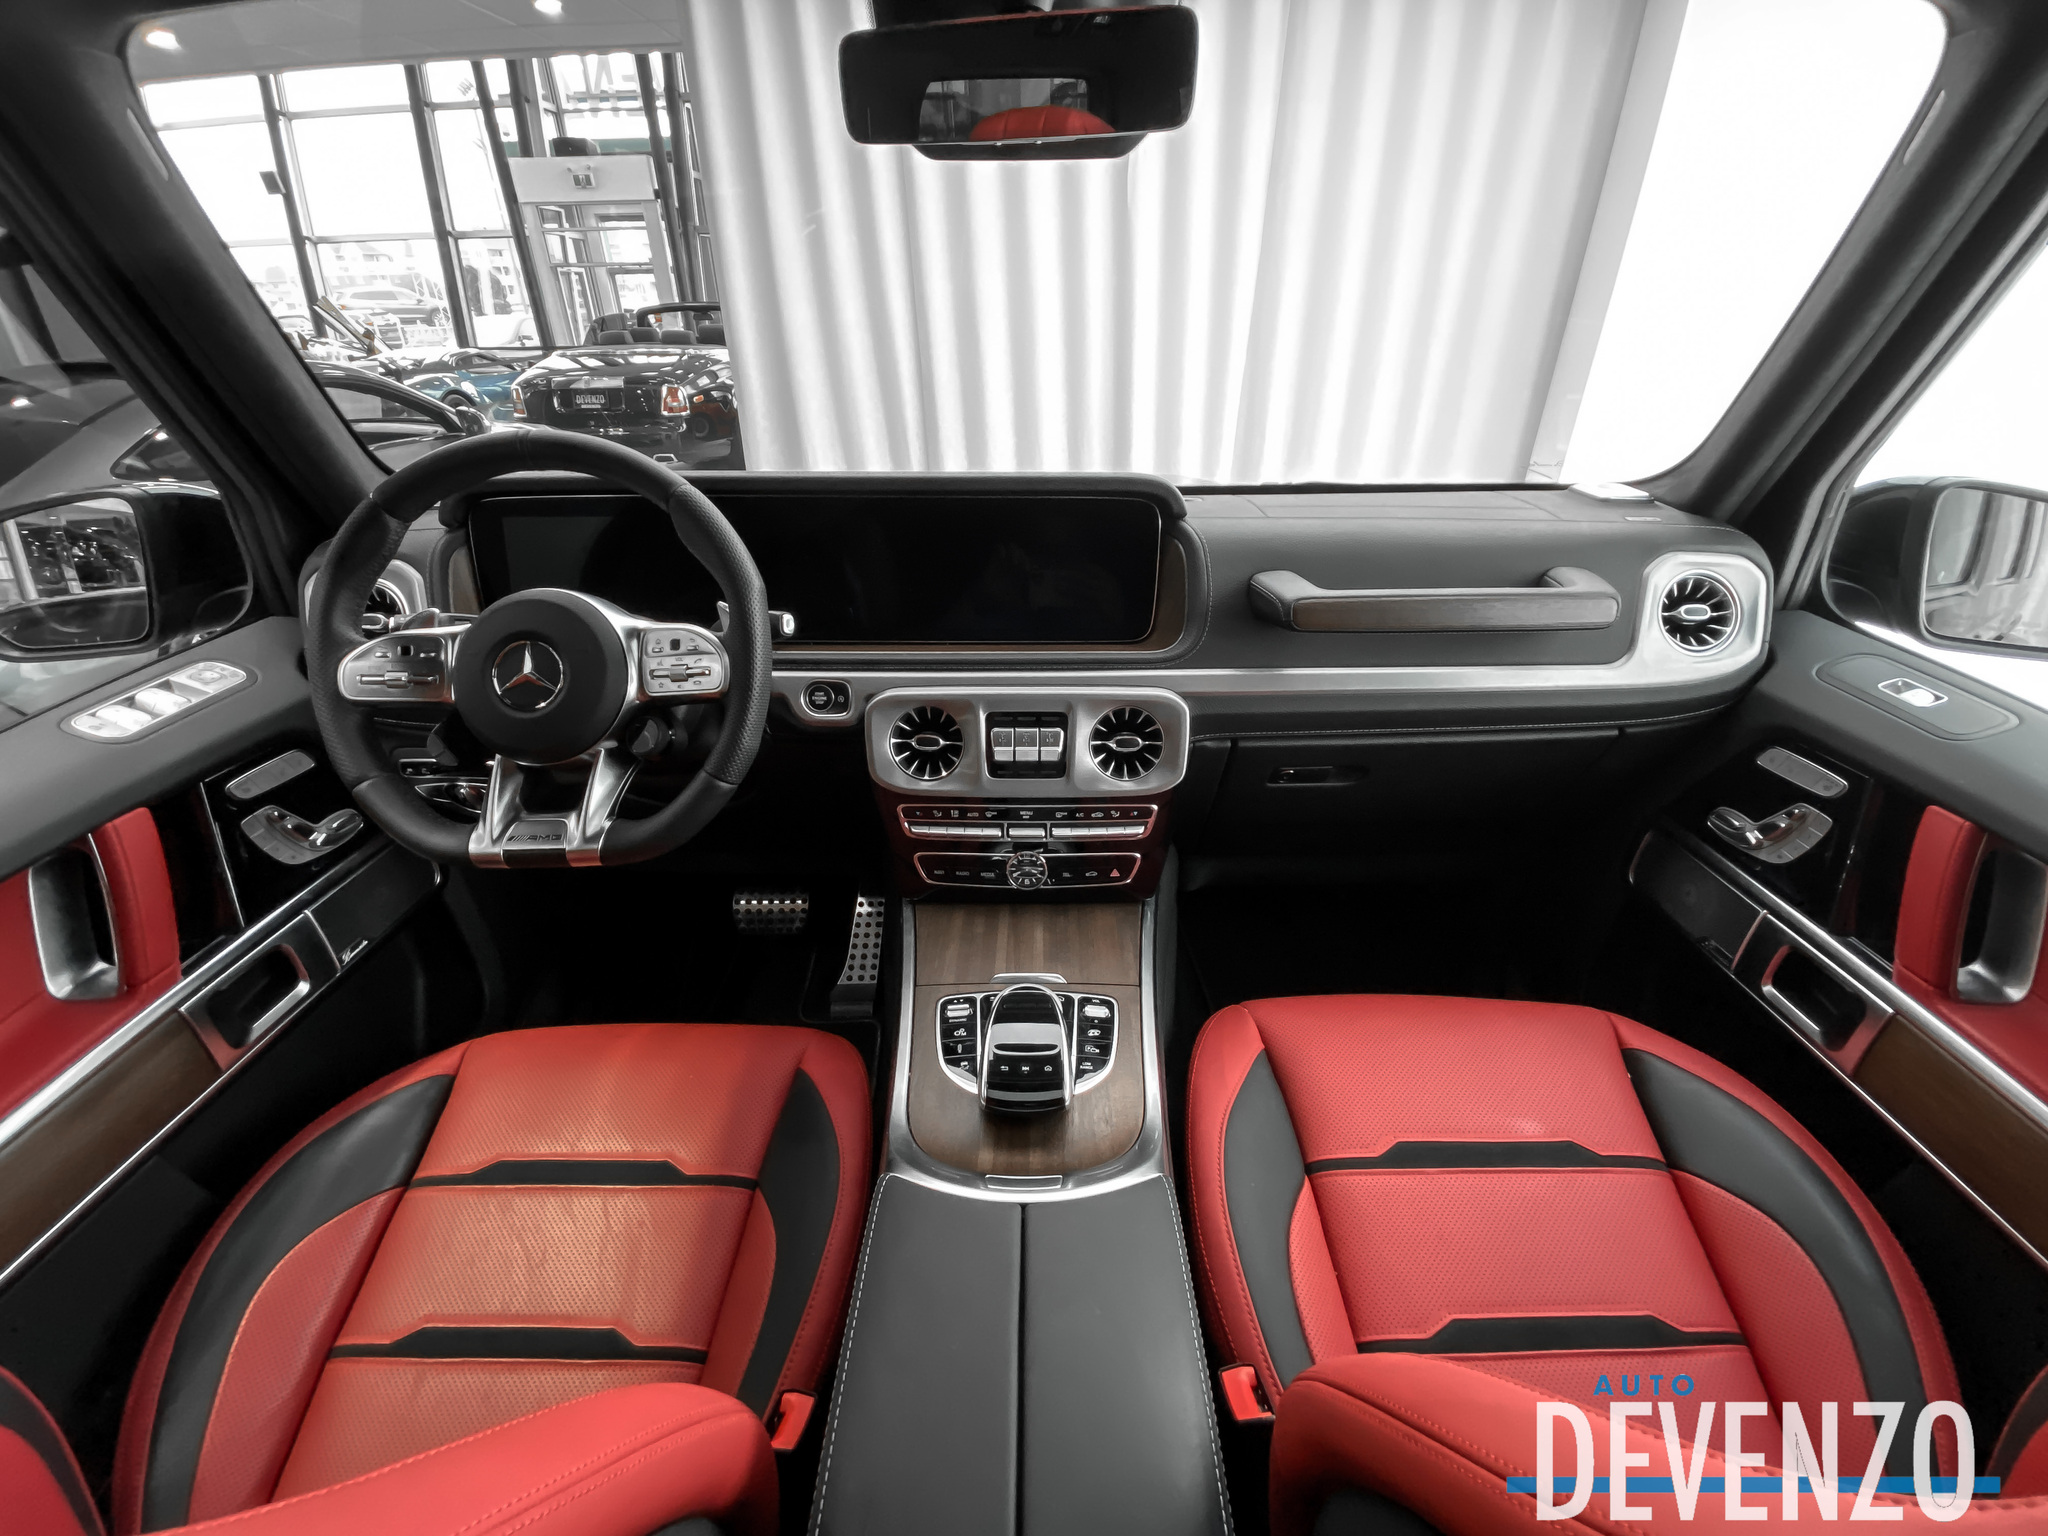 2021 Mercedes-Benz G-Class AMG G63 4MATIC SUV NIGHT PACKAGE 577HP complet